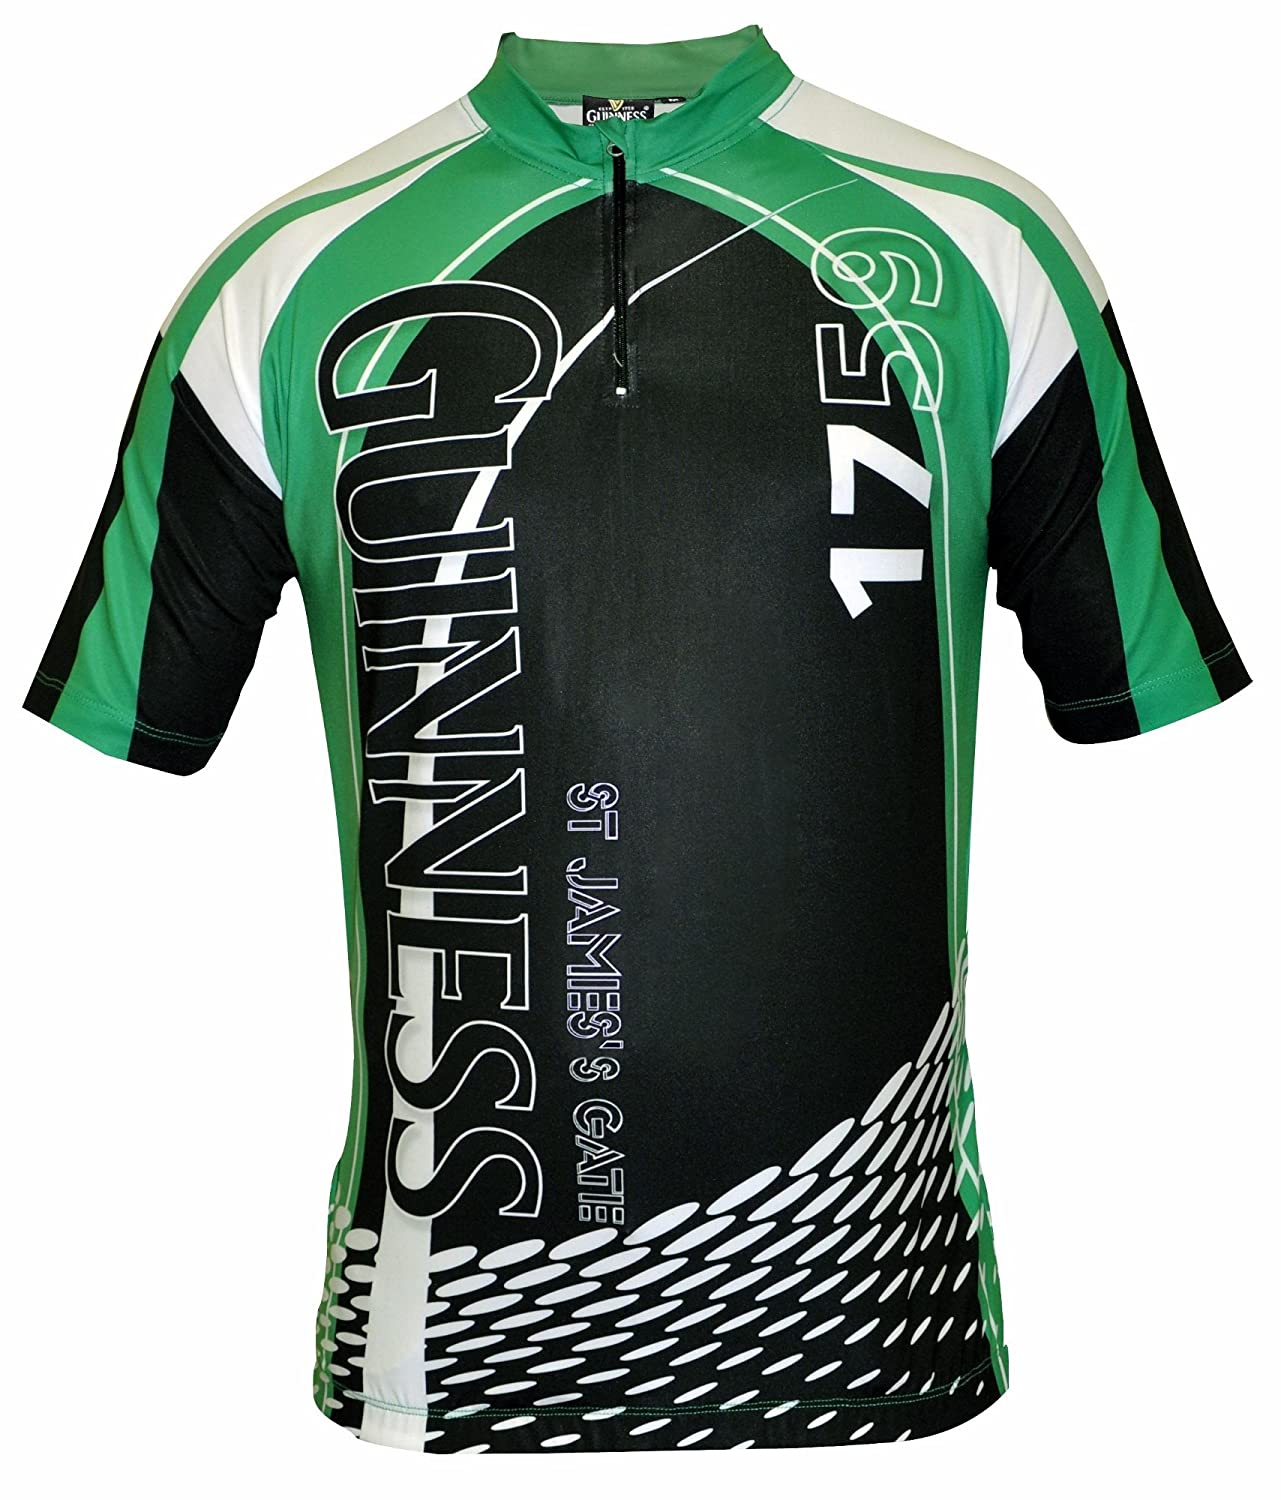 Guinness Cycling Jersey G4610-S